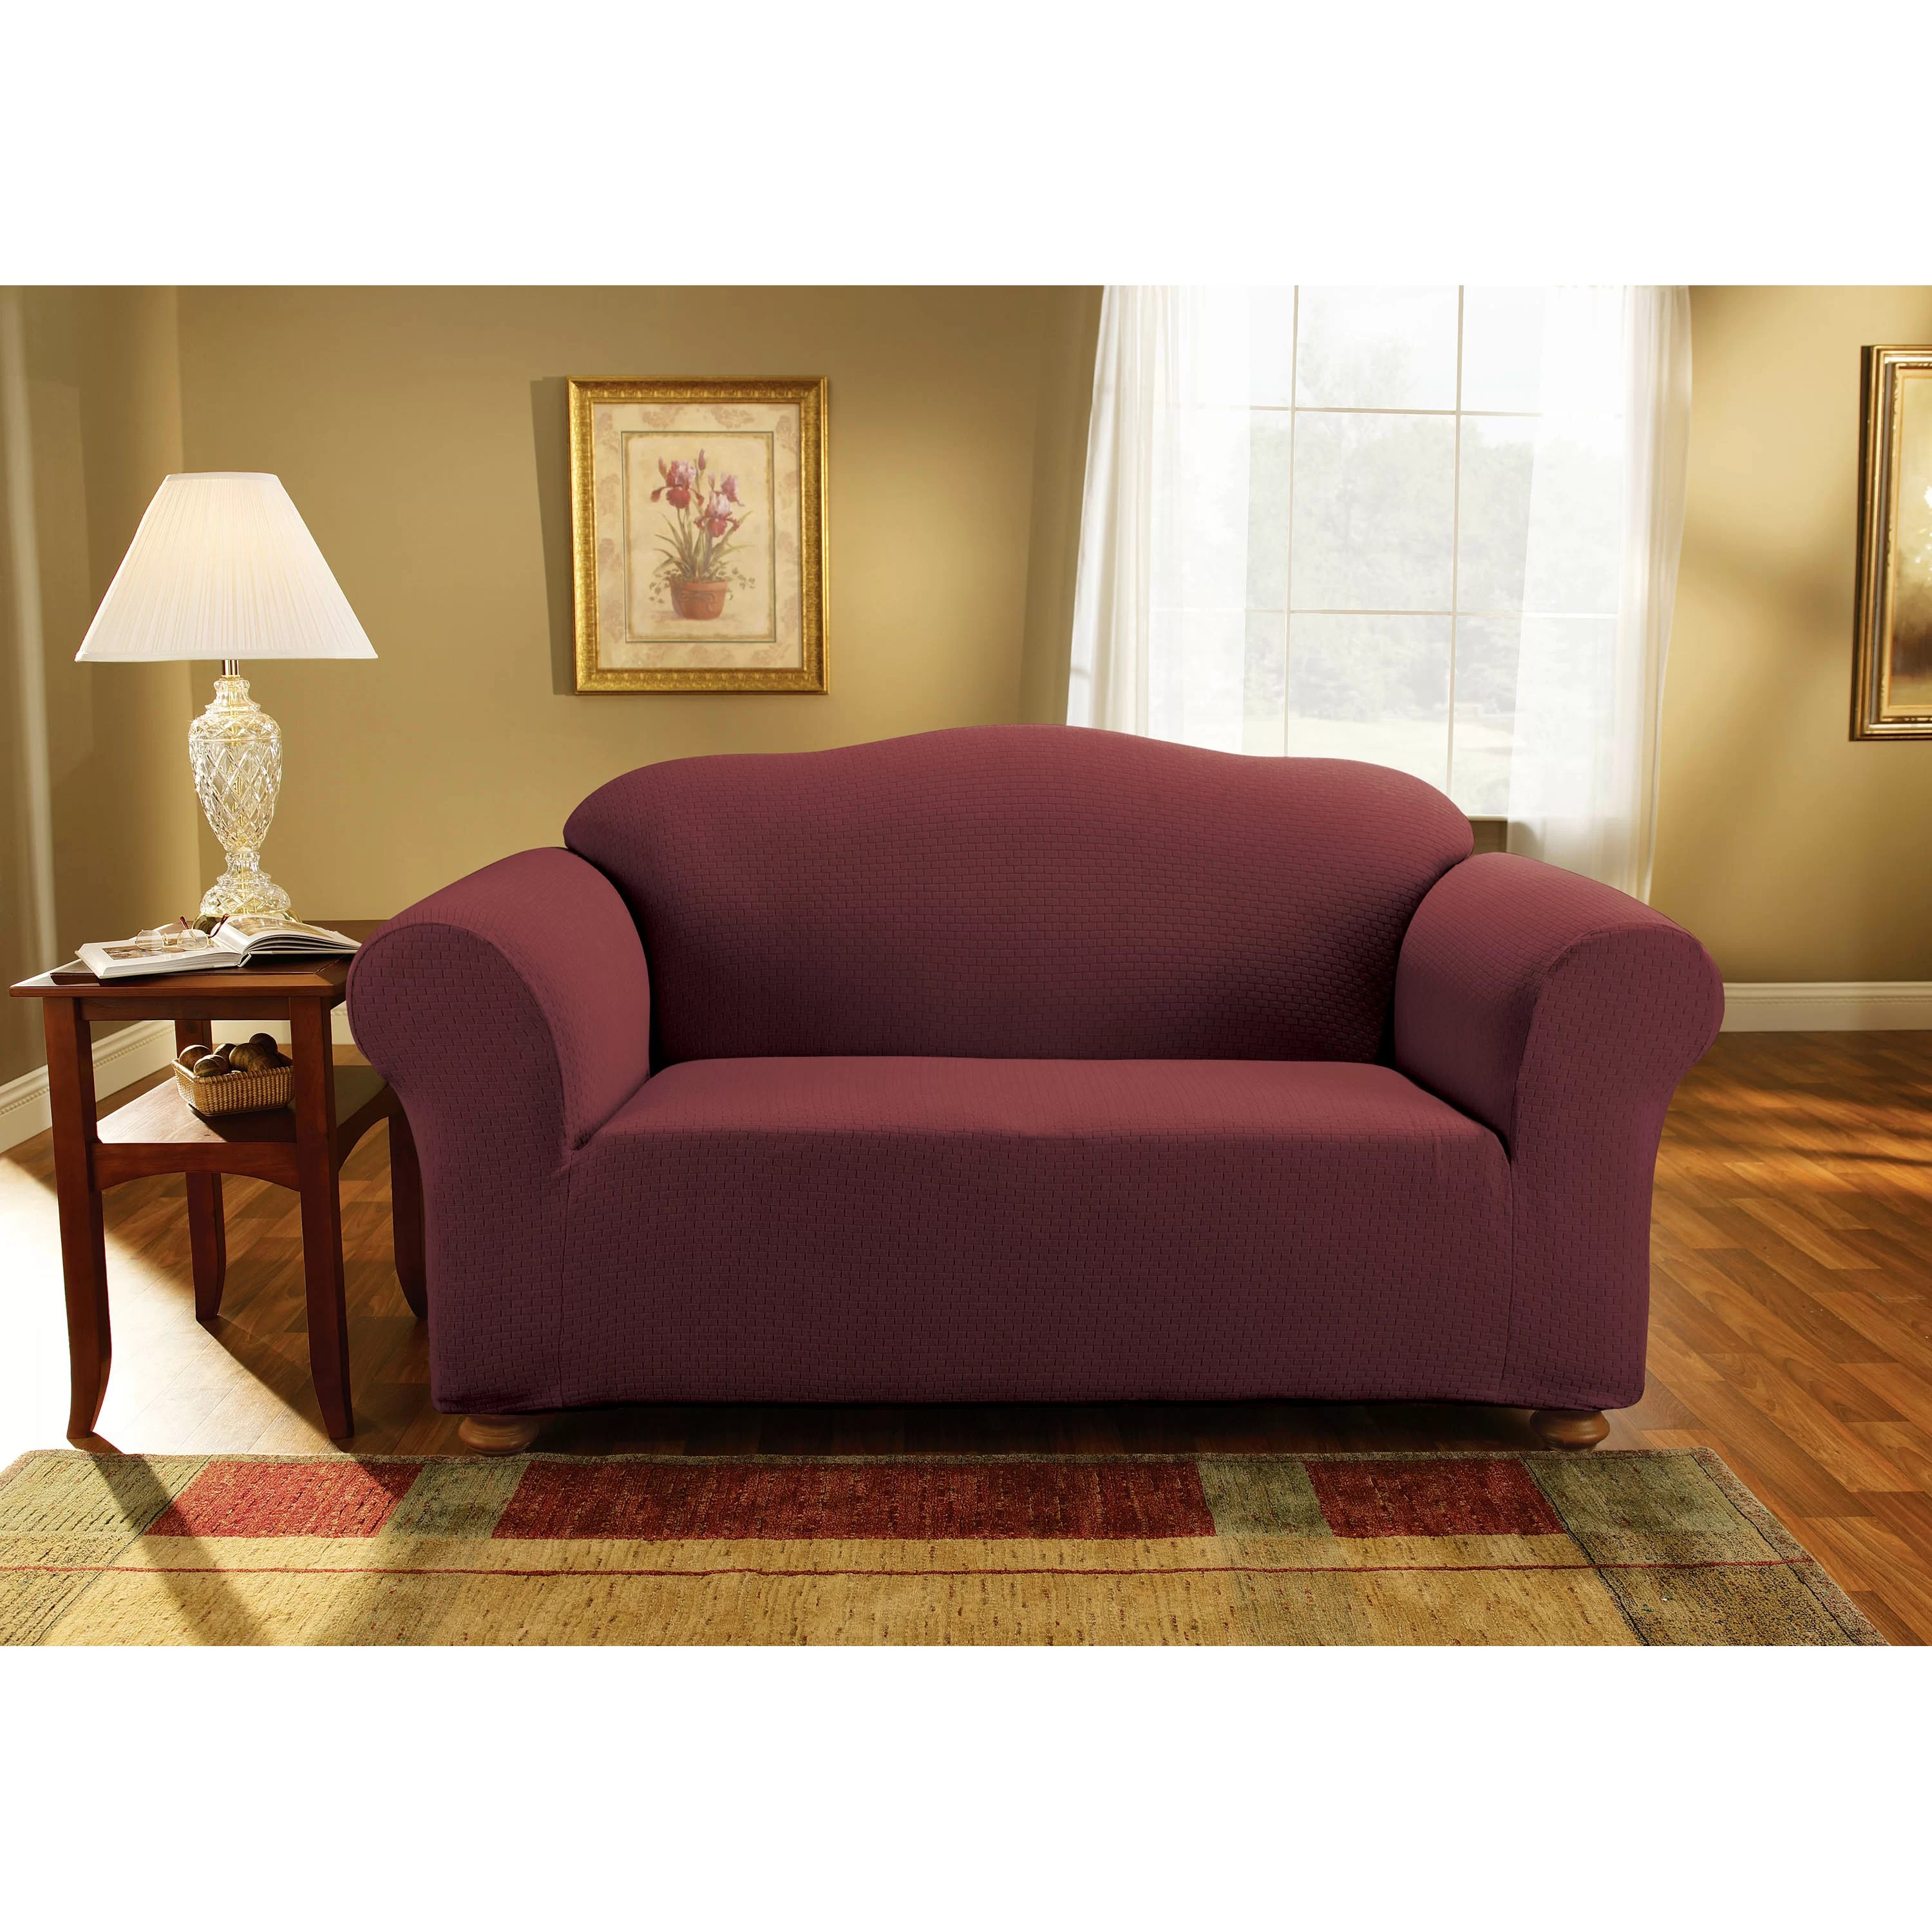 stretch morgan 1 piece sofa furniture cover affordable sectional sleeper sure fit simple subway loveseat slipcover